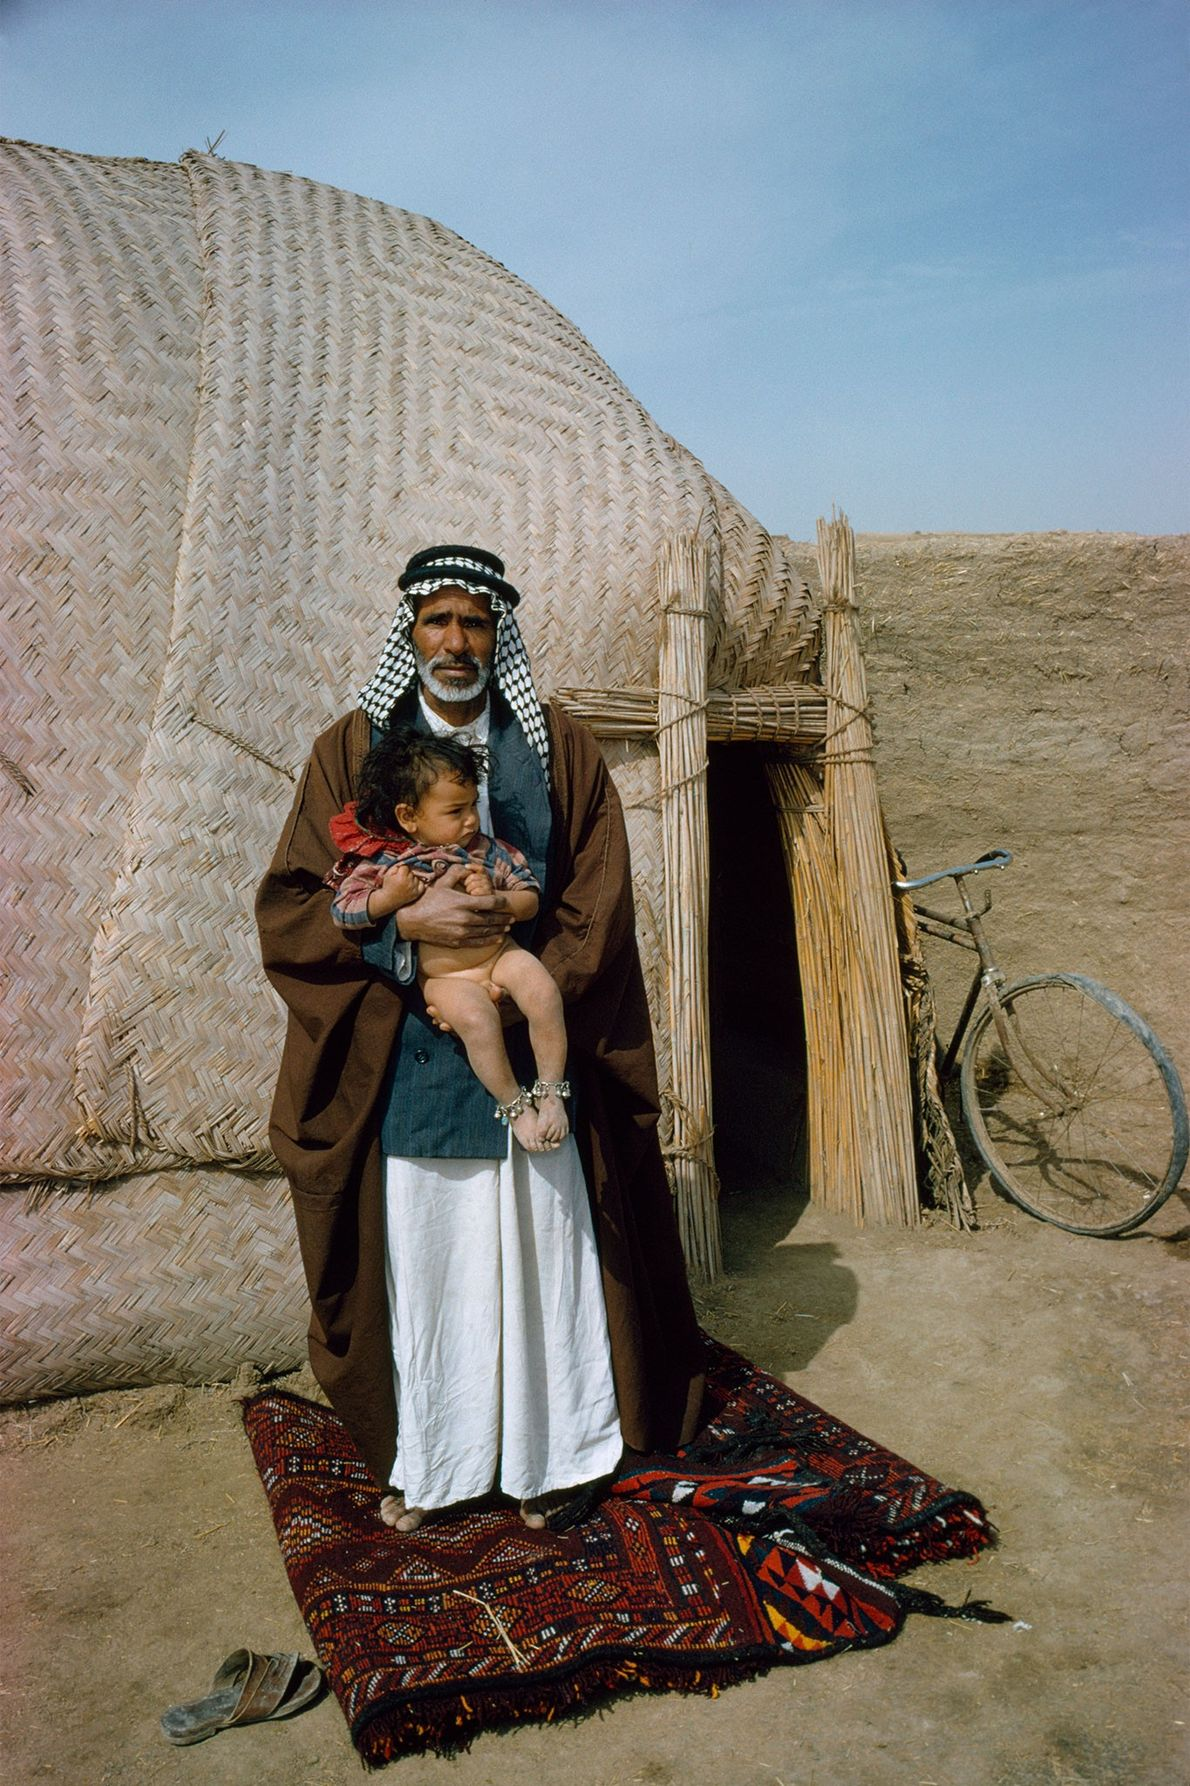 A man holds his son while standing on the rug outside his rush-mat hut in Iraq.